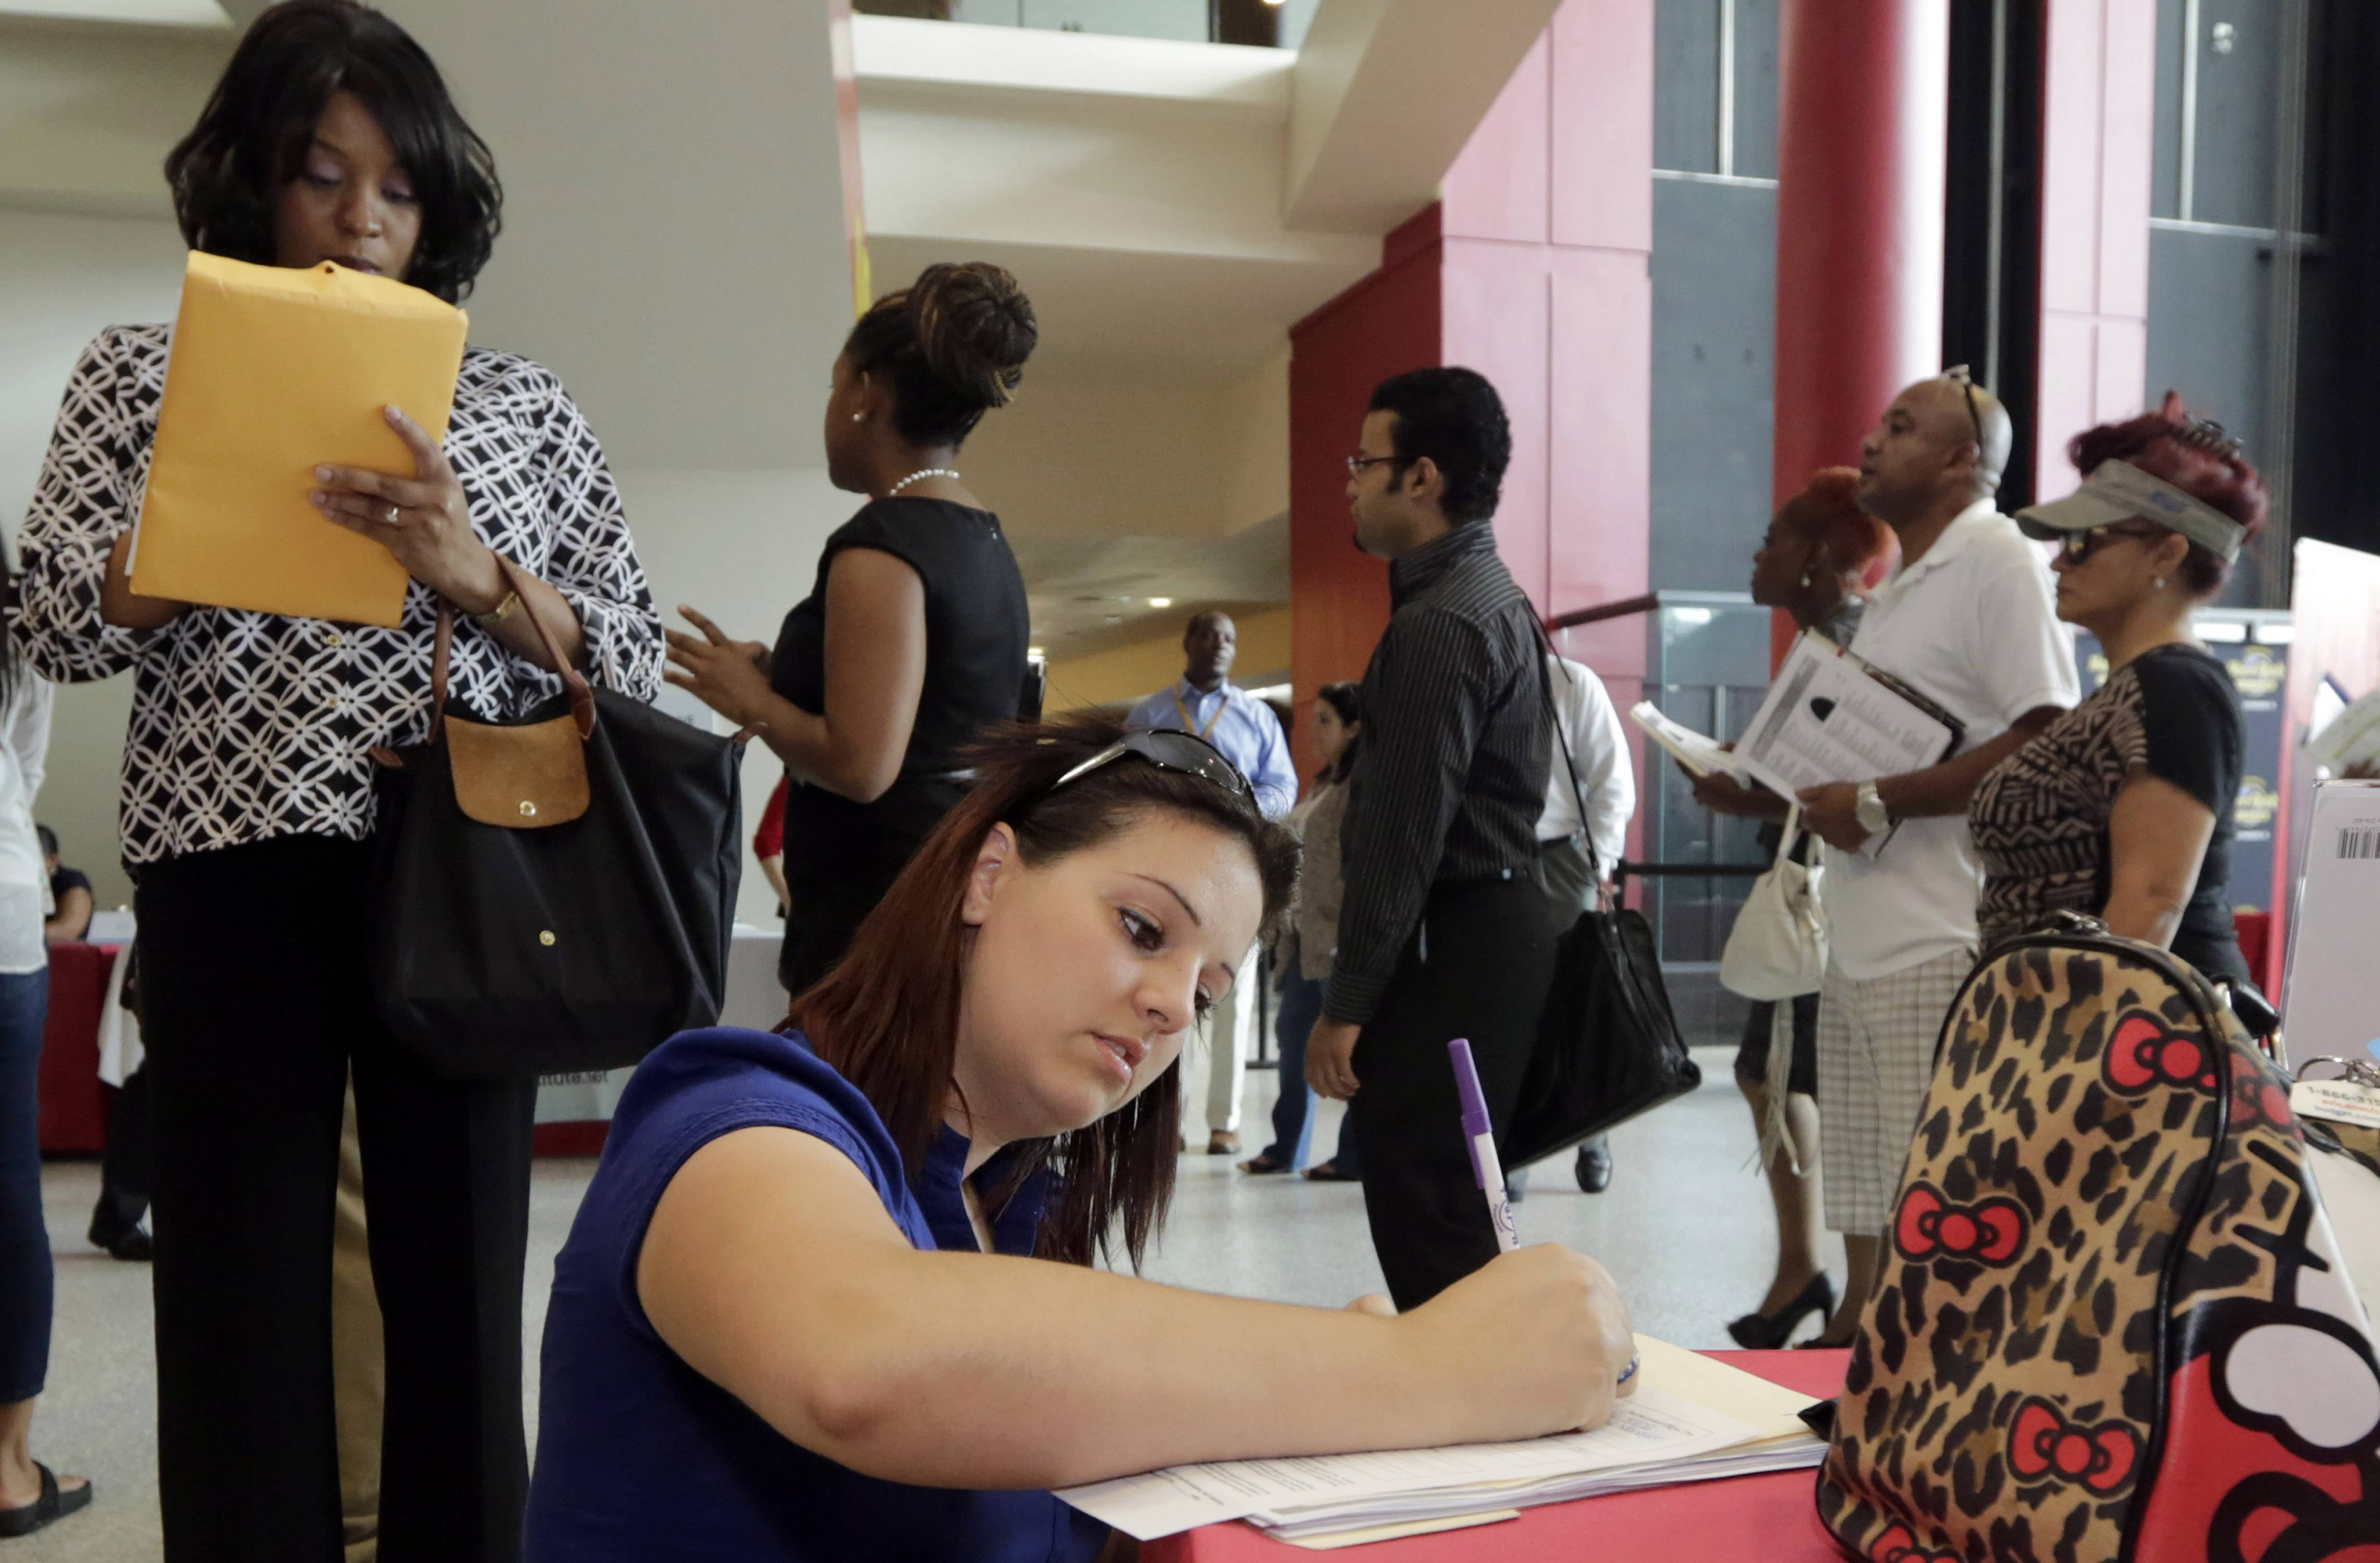 Jessica Pimentel, of Hollywood, Fla., fills out a job application during a job fair in Sunrise. Fla. The number of Americans seeking unemployment benefits slipped 1,000 last week to a seasonally adjusted 298,000, a low level that signals employers are cutting few jobs and hiring is likely to remain strong.